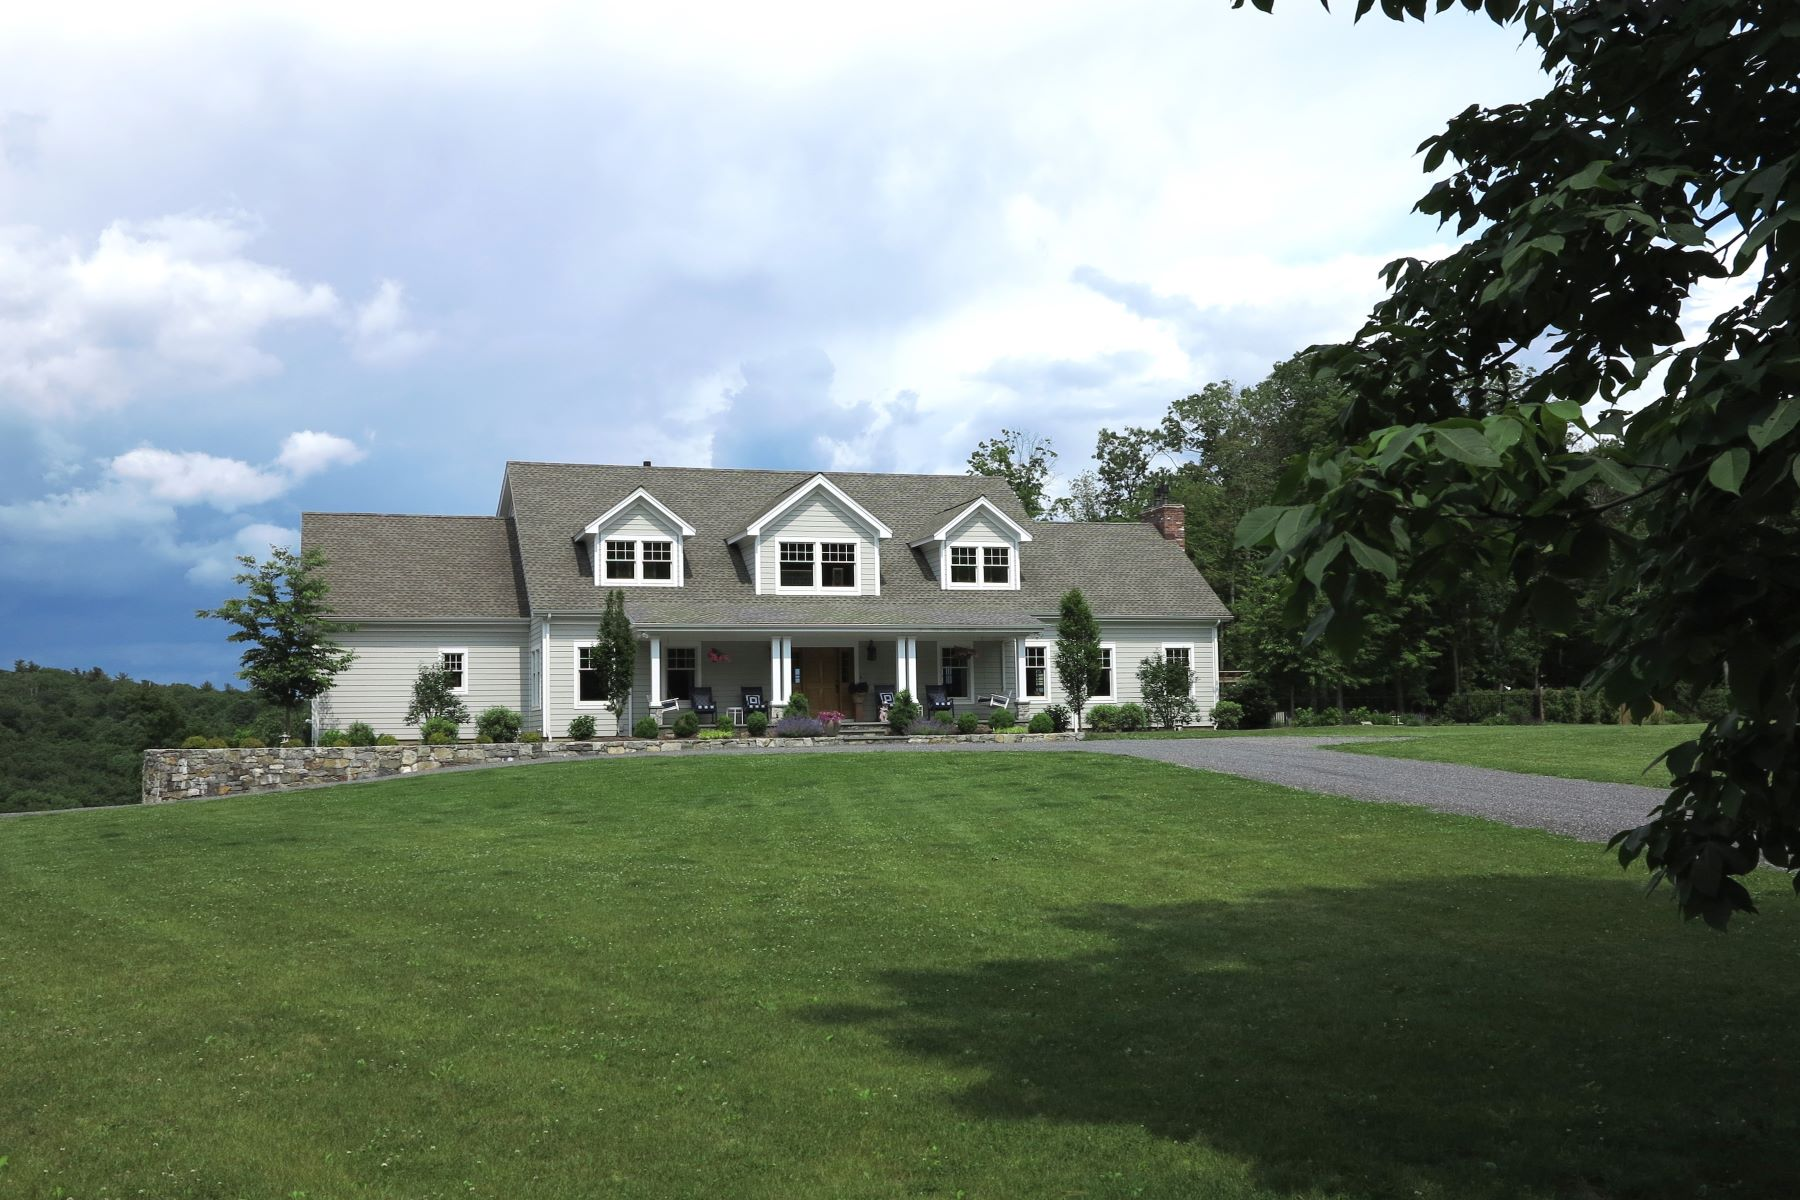 Single Family Homes for Active at Spacious Contemporary-Open Floor Plan, 5 Bedroom Suites on 13+ Acres with Pool & 32 Oxbow Rd Egremont, Massachusetts 01230 United States